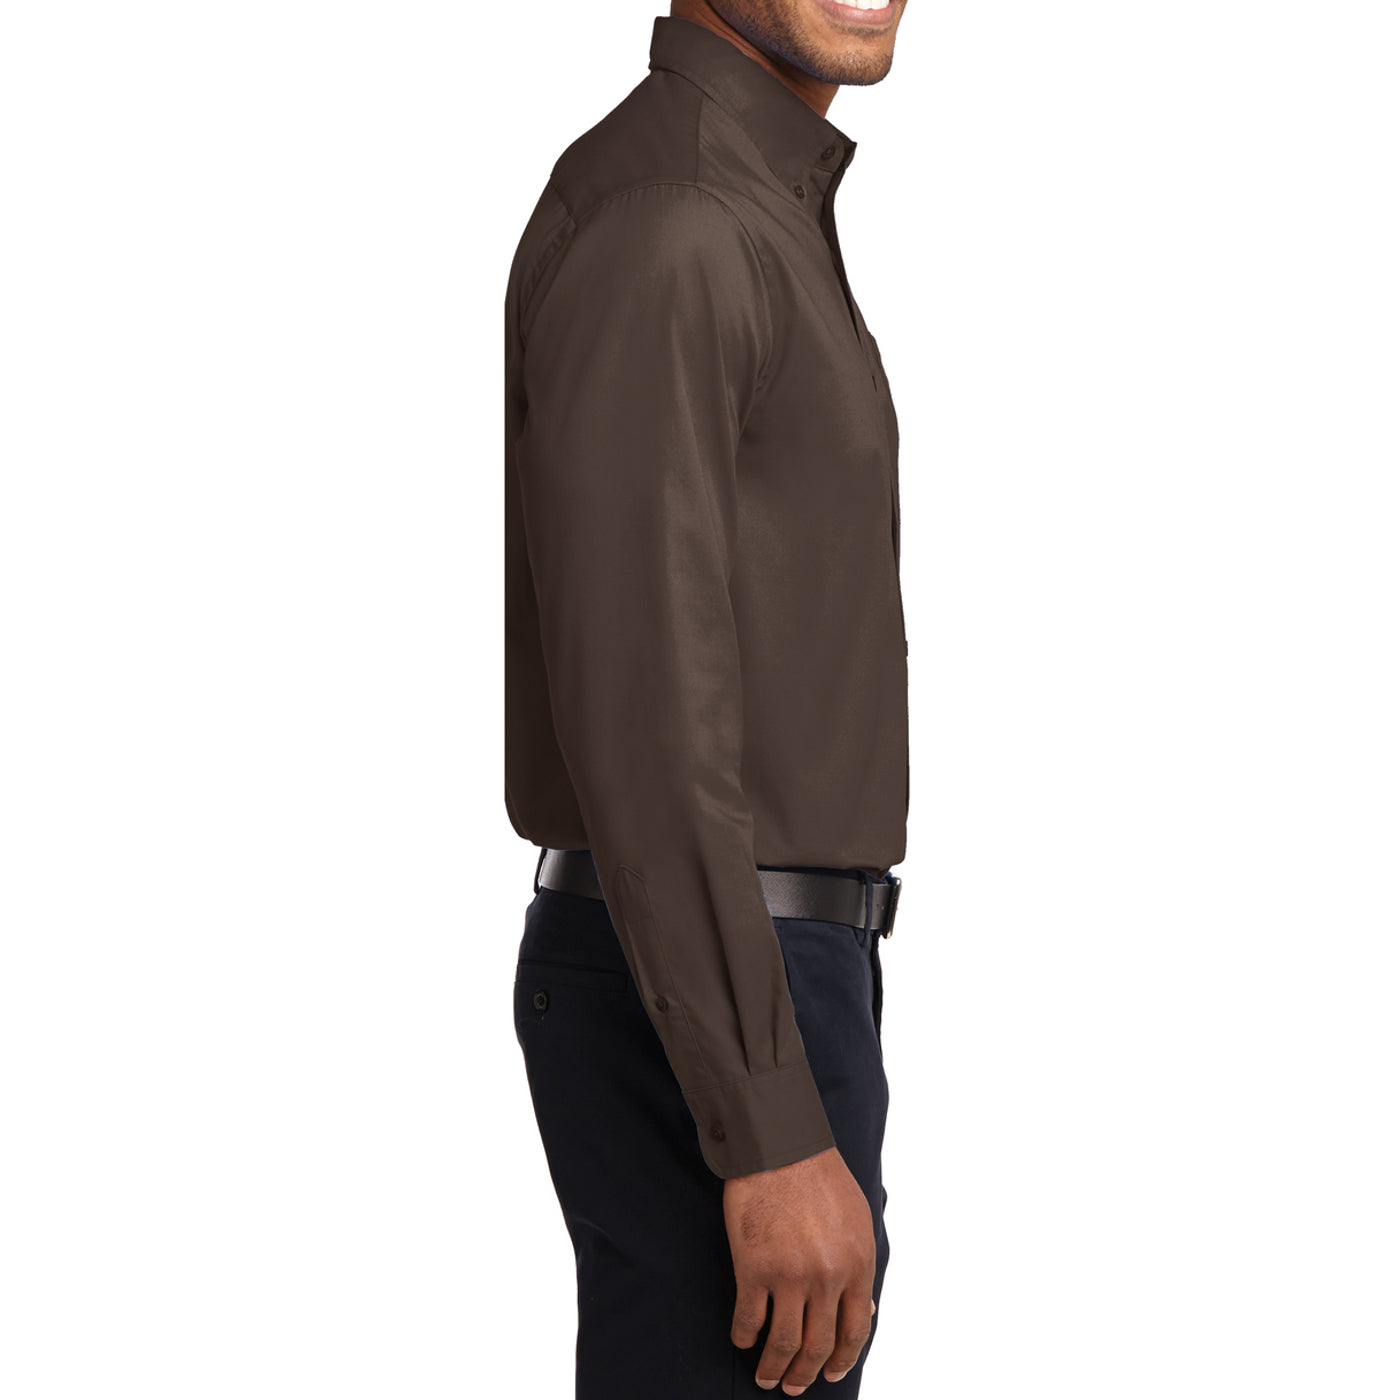 Men's Long Sleeve Easy Care Shirt - Coffee Bean/ Light Stone - Side